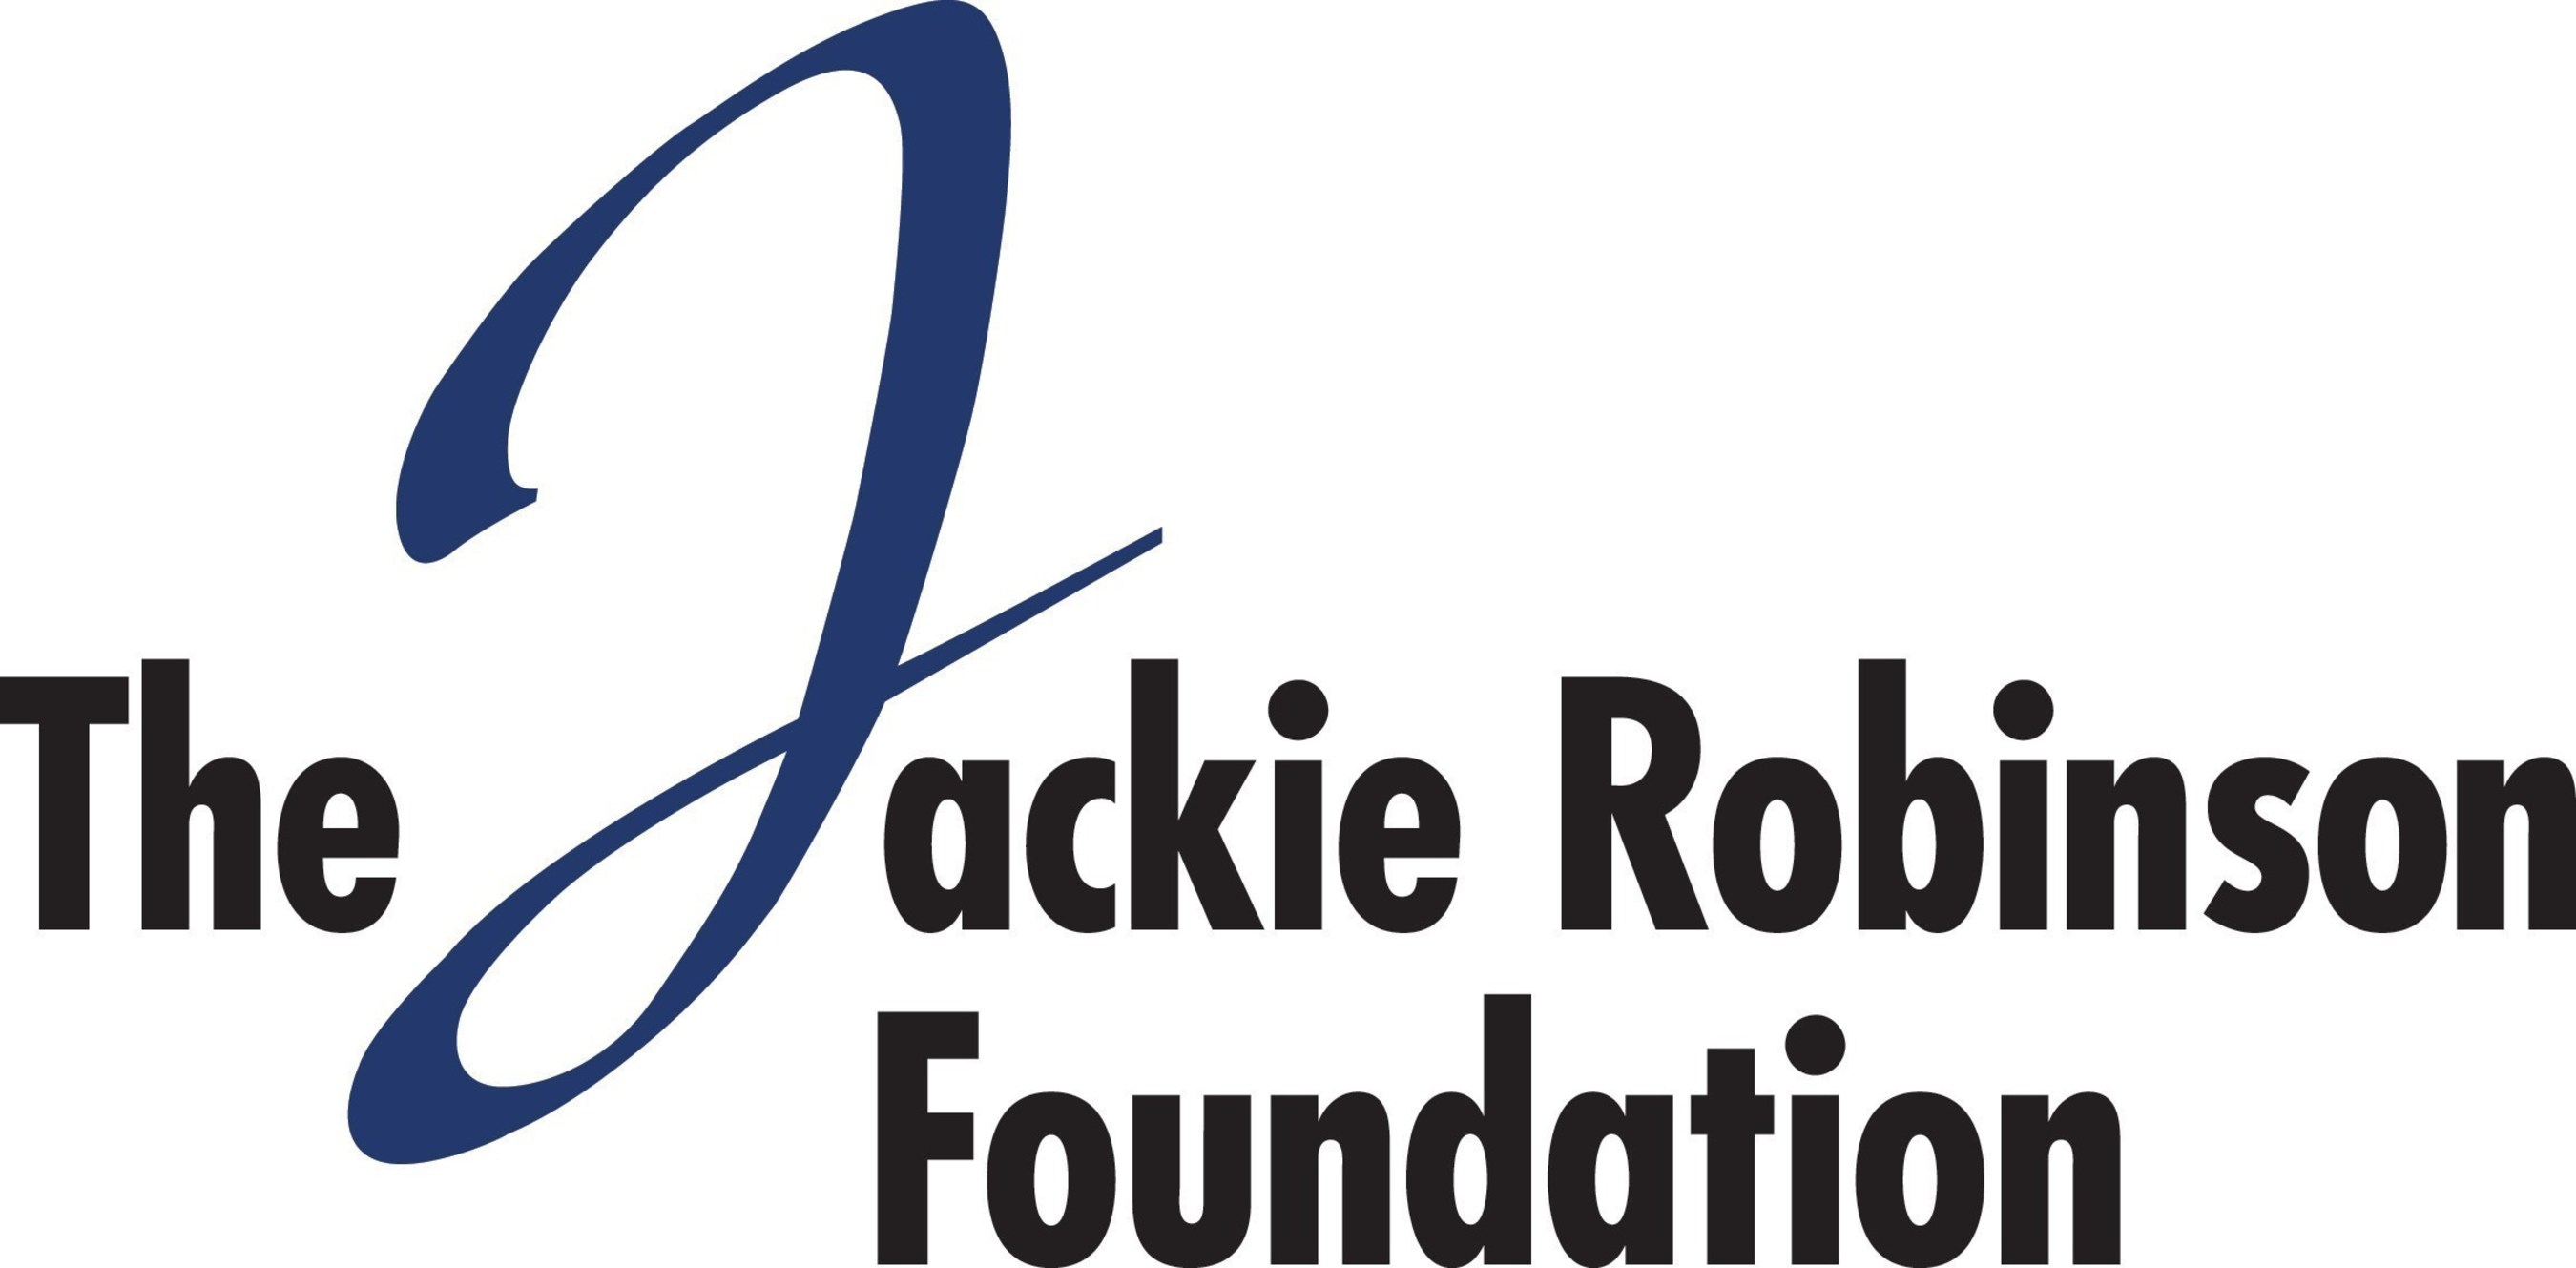 Image result for Jackie Robinson foundation logo""